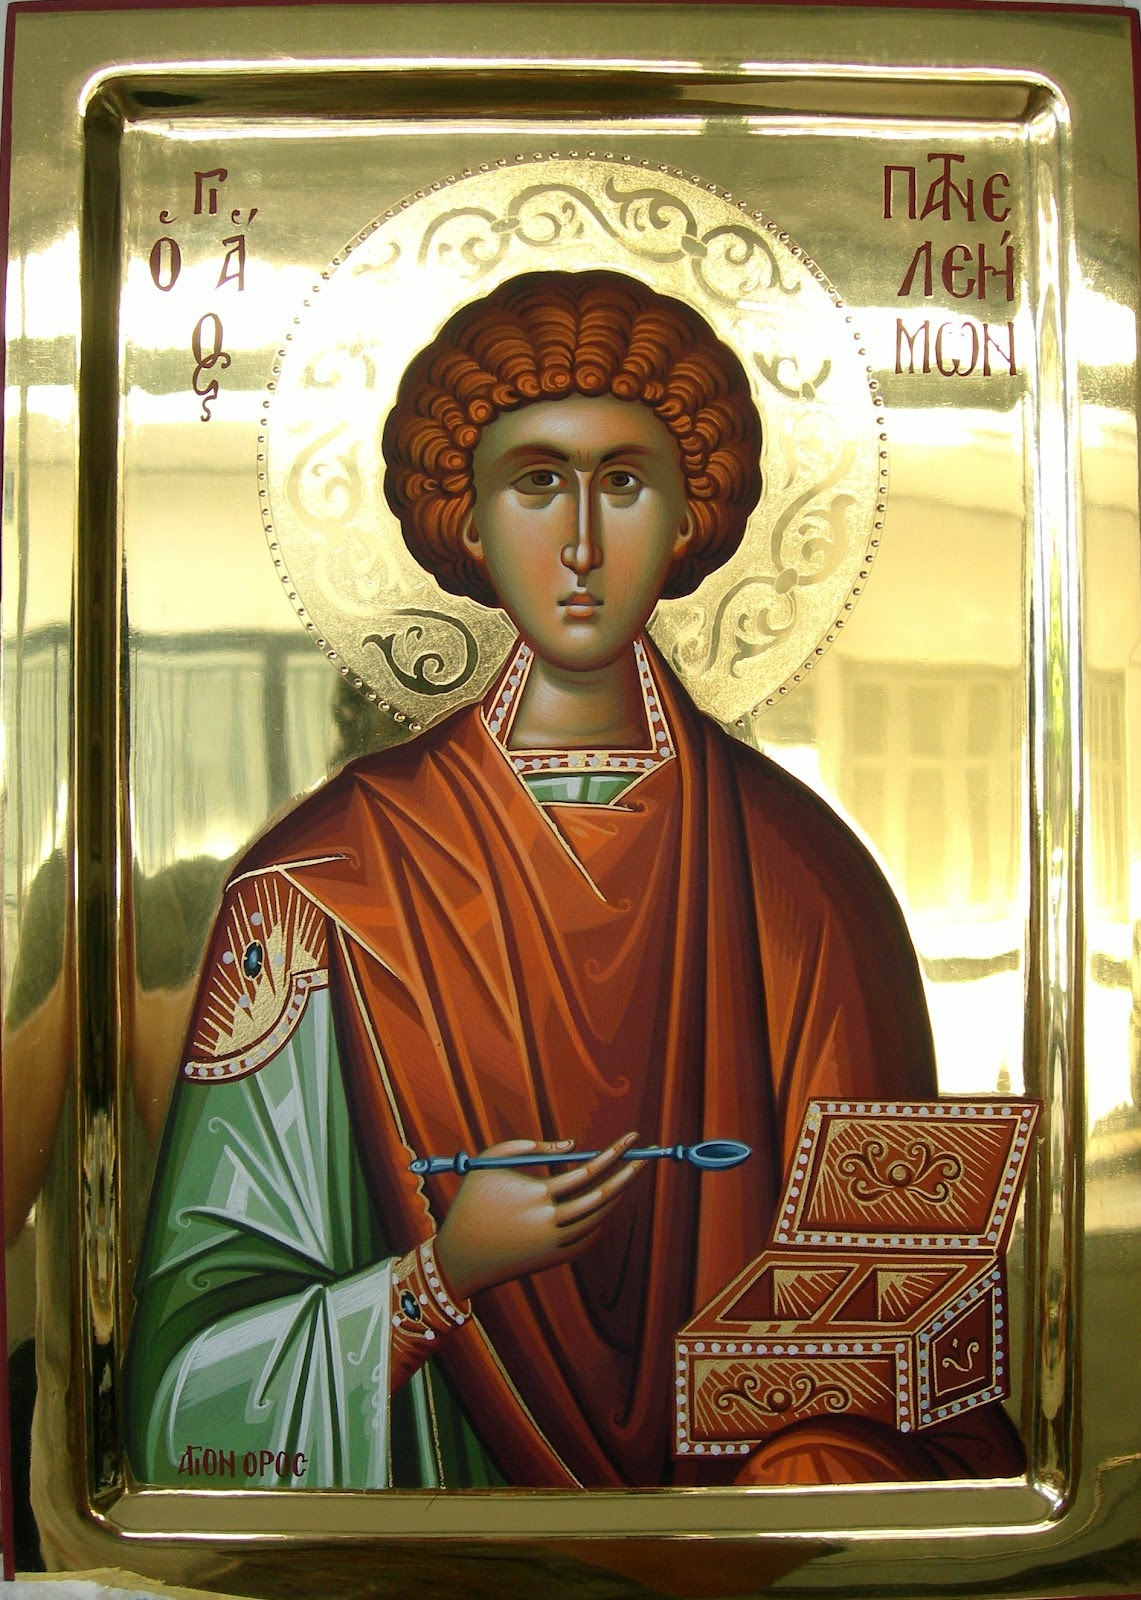 ... tones to St. Panteleimon, by St. Joseph the Hymnographer: Second Tone